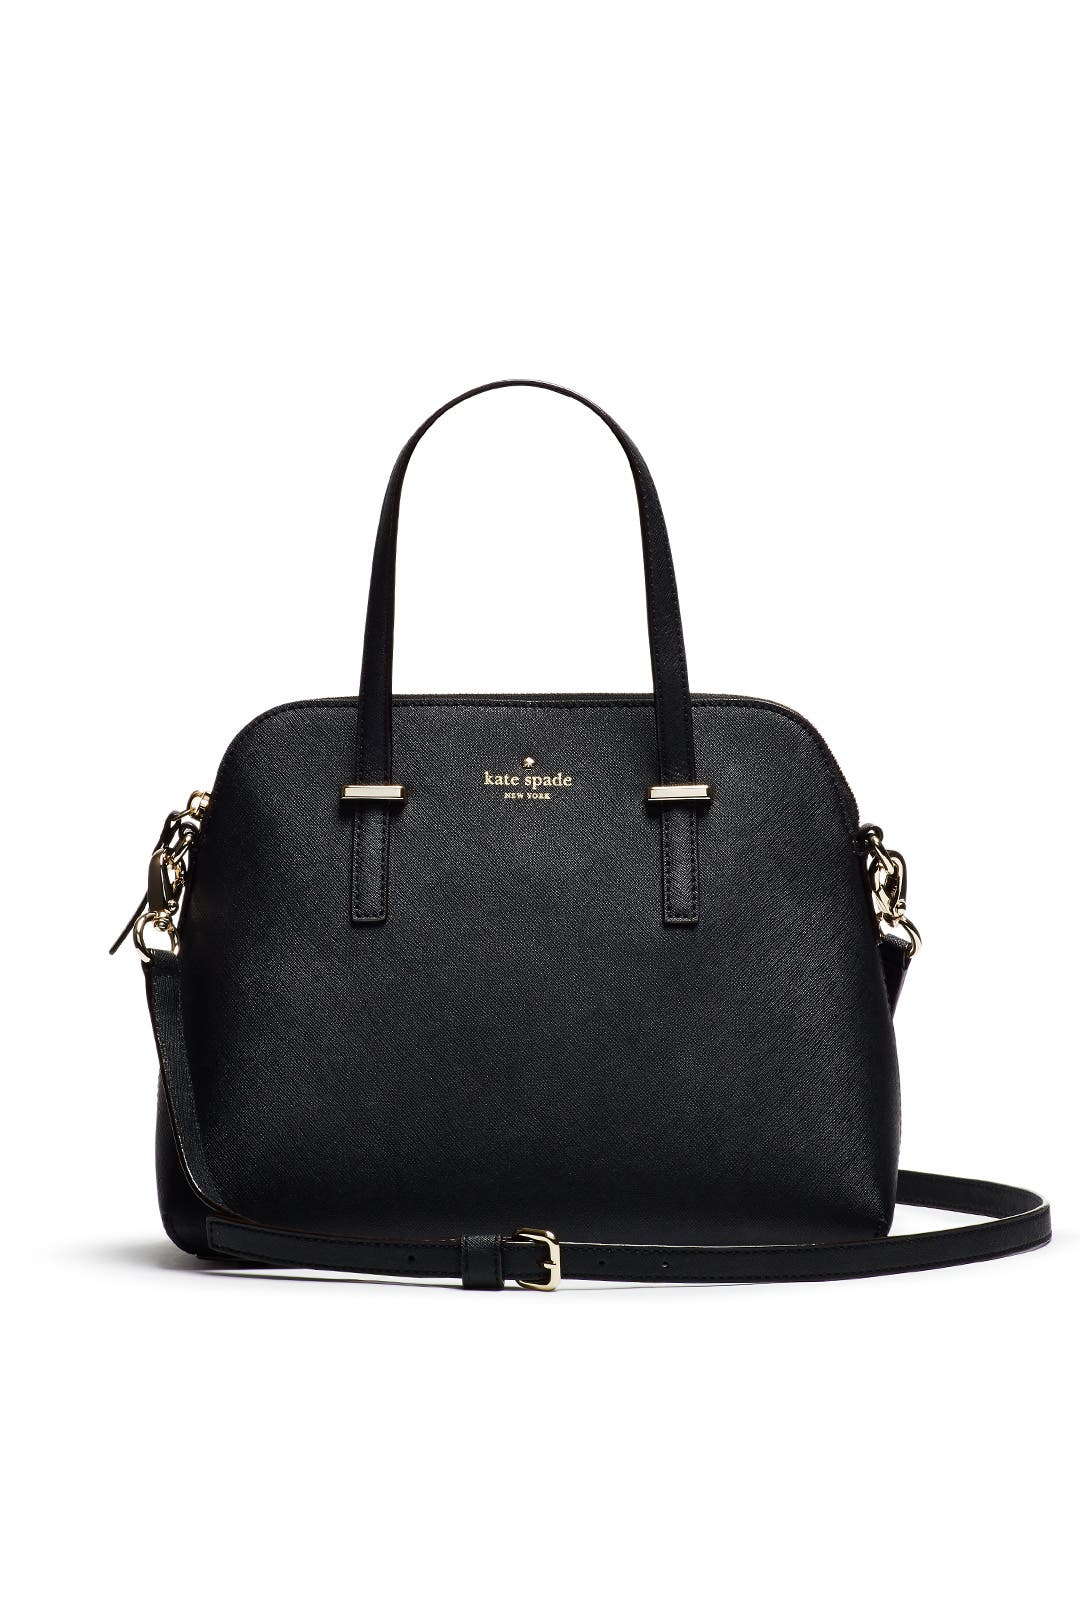 Black Cedar Street Maise Handbag by kate spade new york accessories